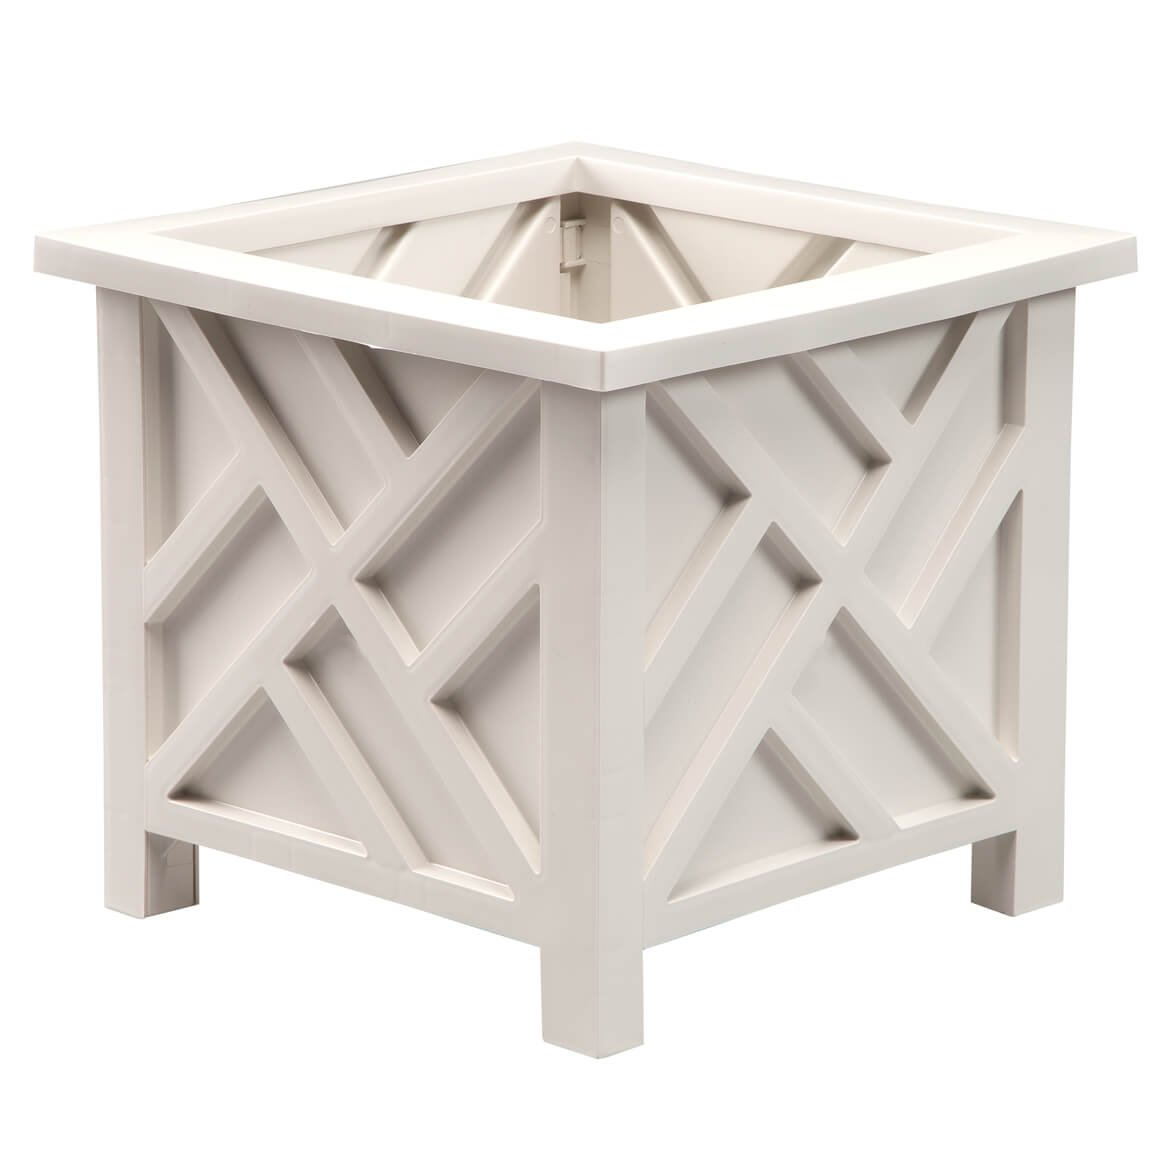 Miles Kimball Chippendale Planter - White by Miles Kimball